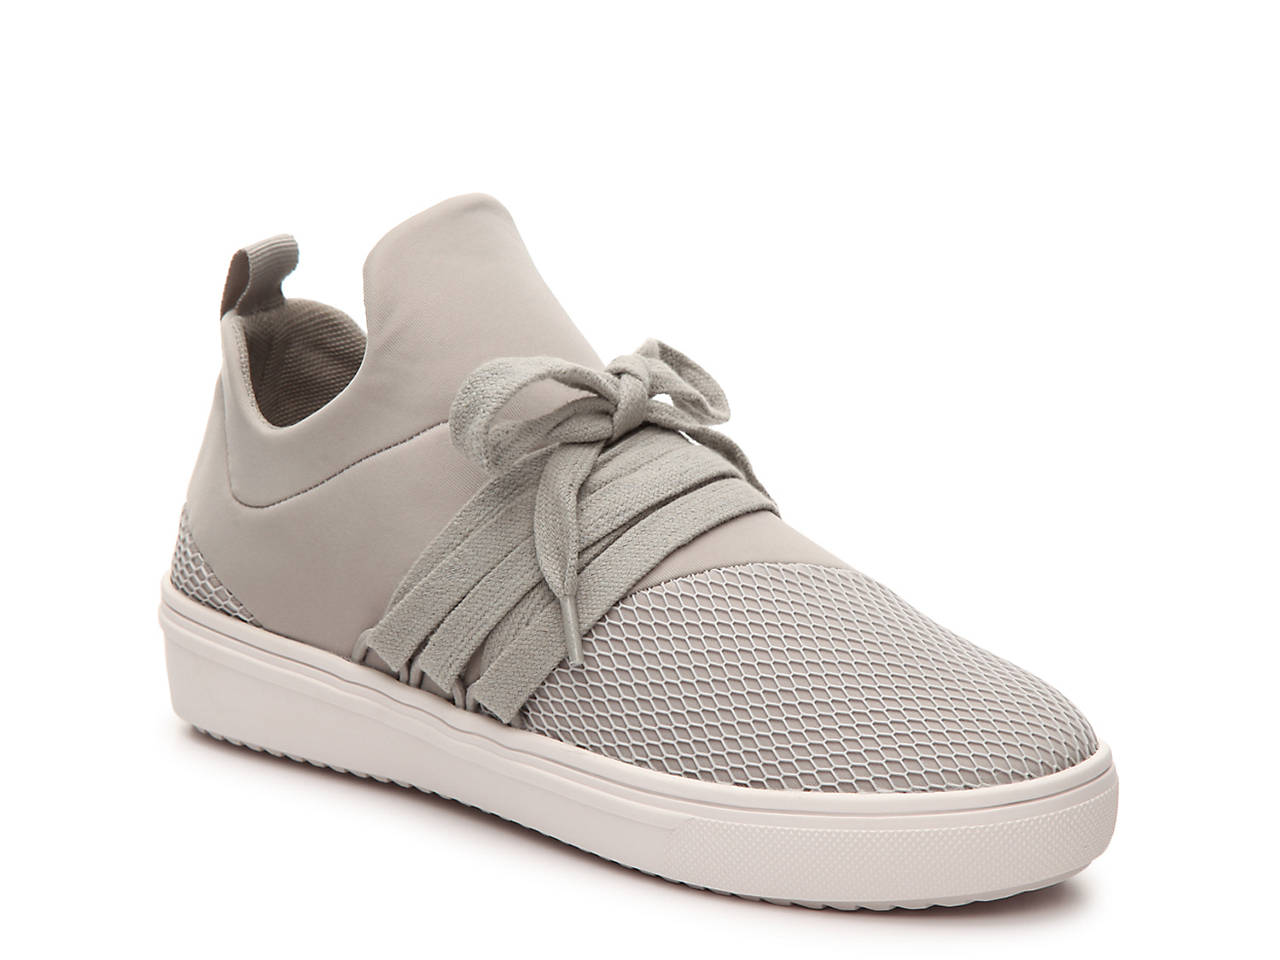 e9d578dd6d7 Steve Madden Lancer Sneaker Women s Shoes